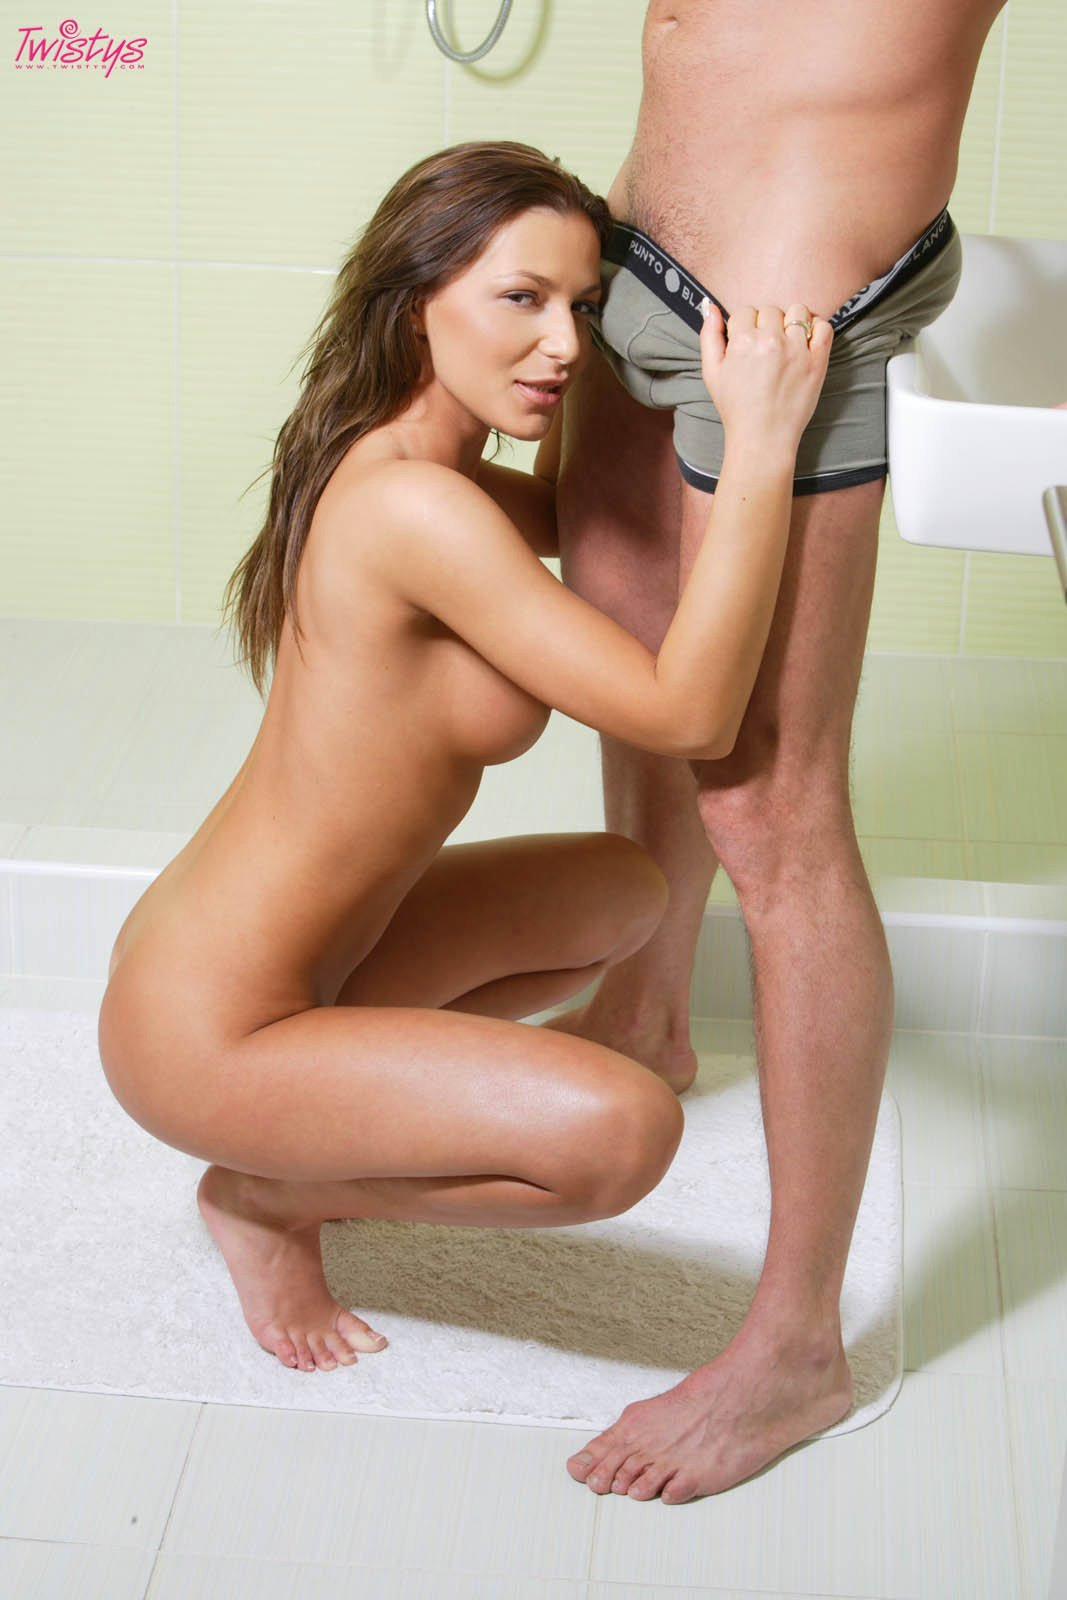 In the shower sex florina rose authoritative message